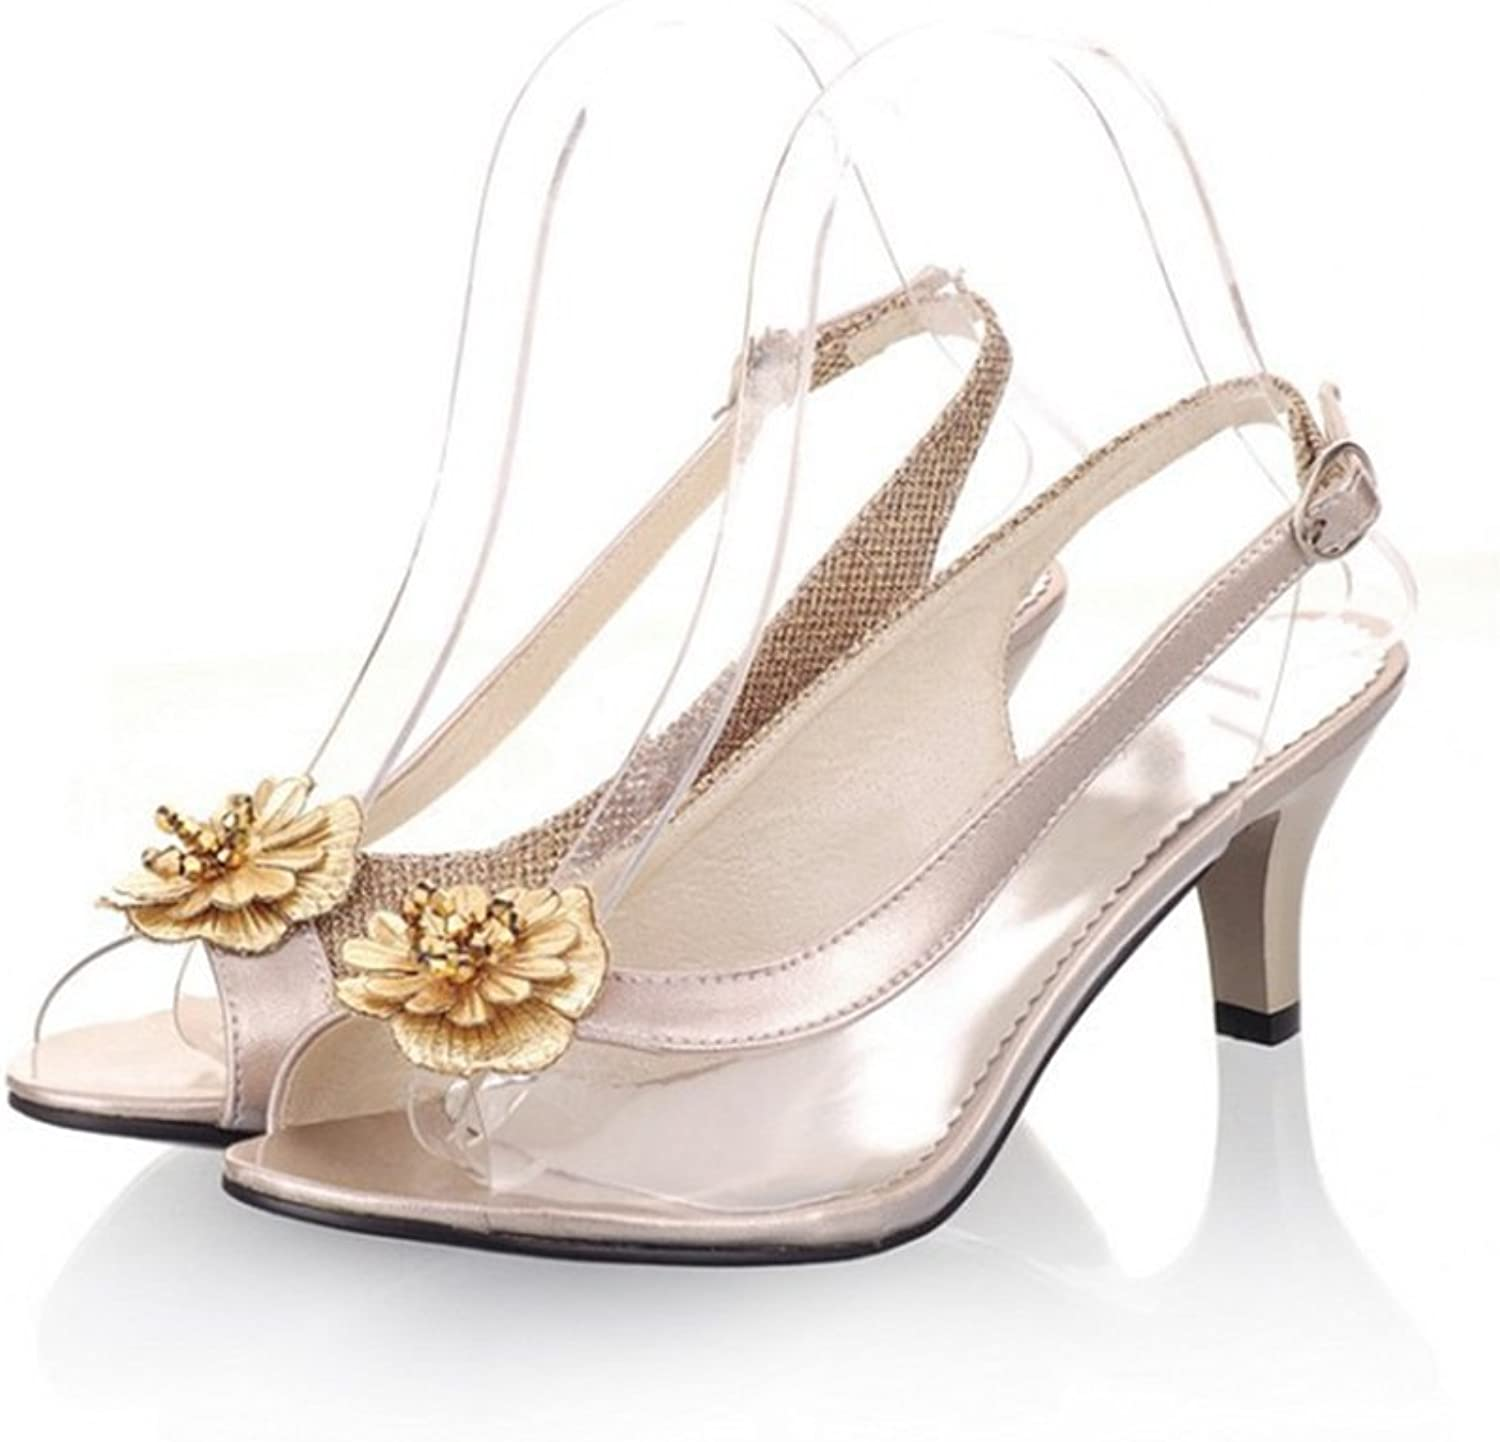 GIY Womens Fashion Clear Crystal Peep Toe High Heel Sandals with Flower Platform Glitter Dress Sandals